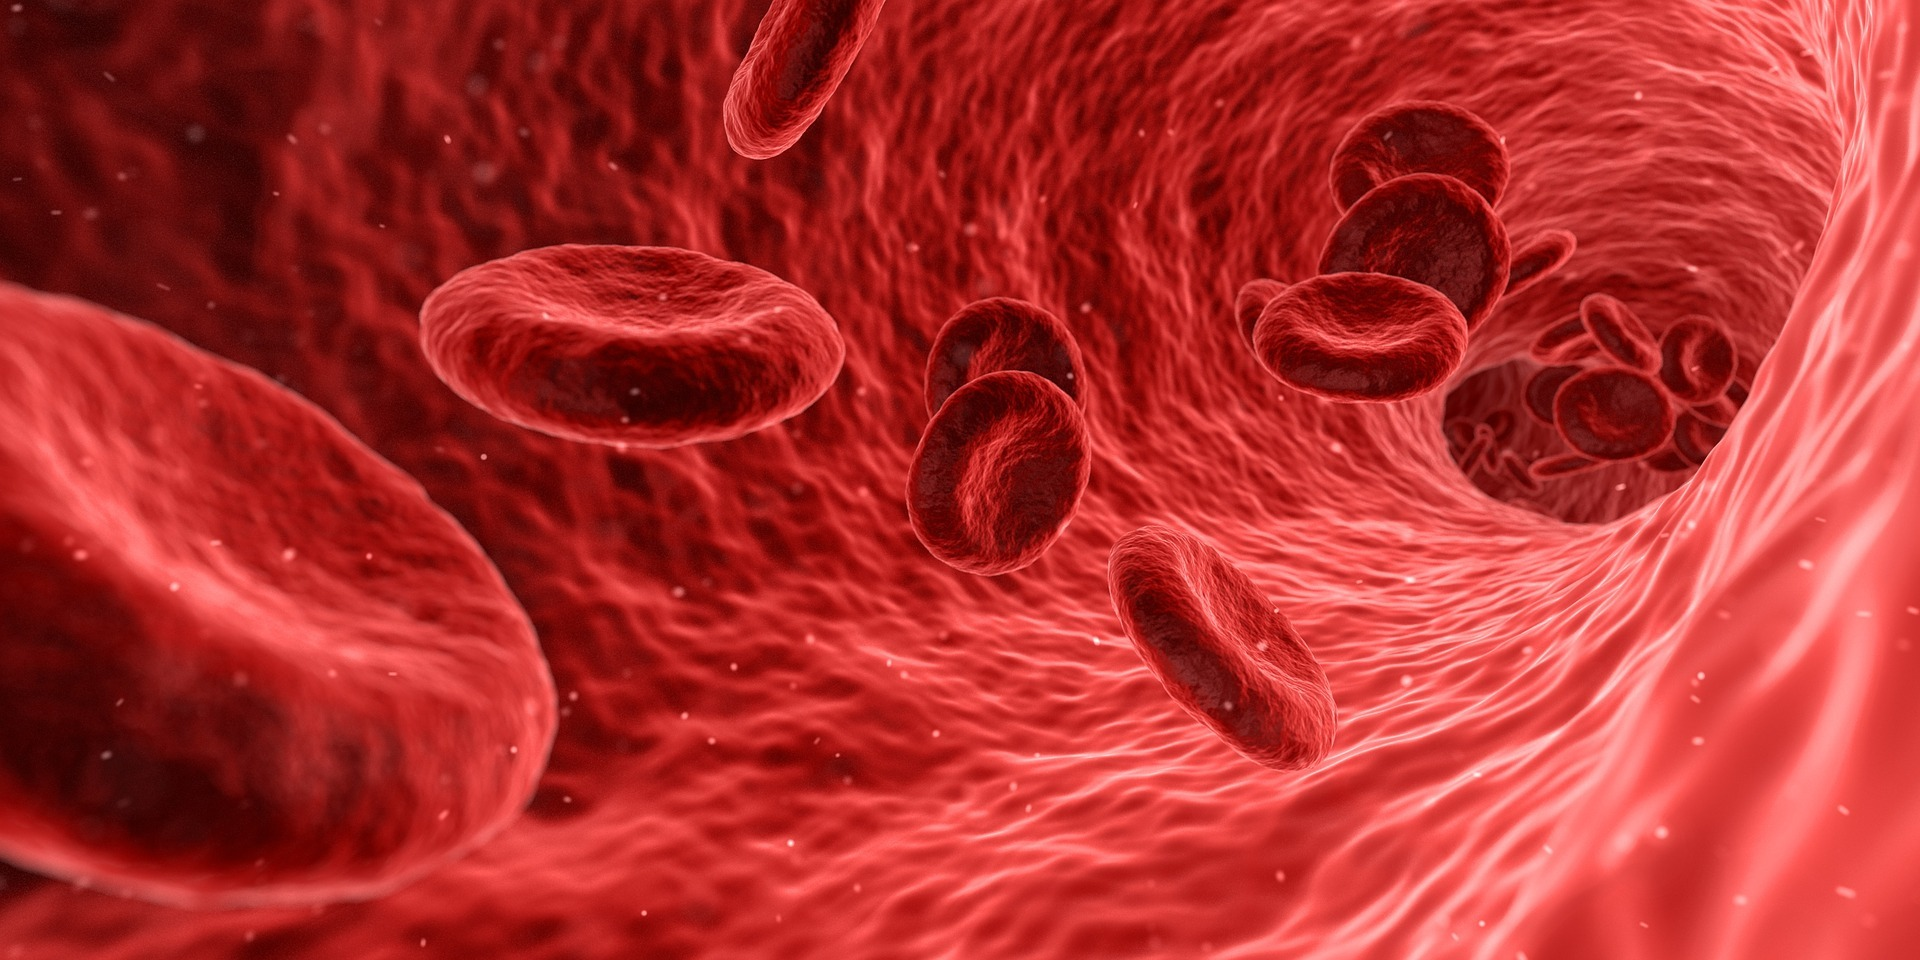 Black people can sufffer with disorders such as sickle cell